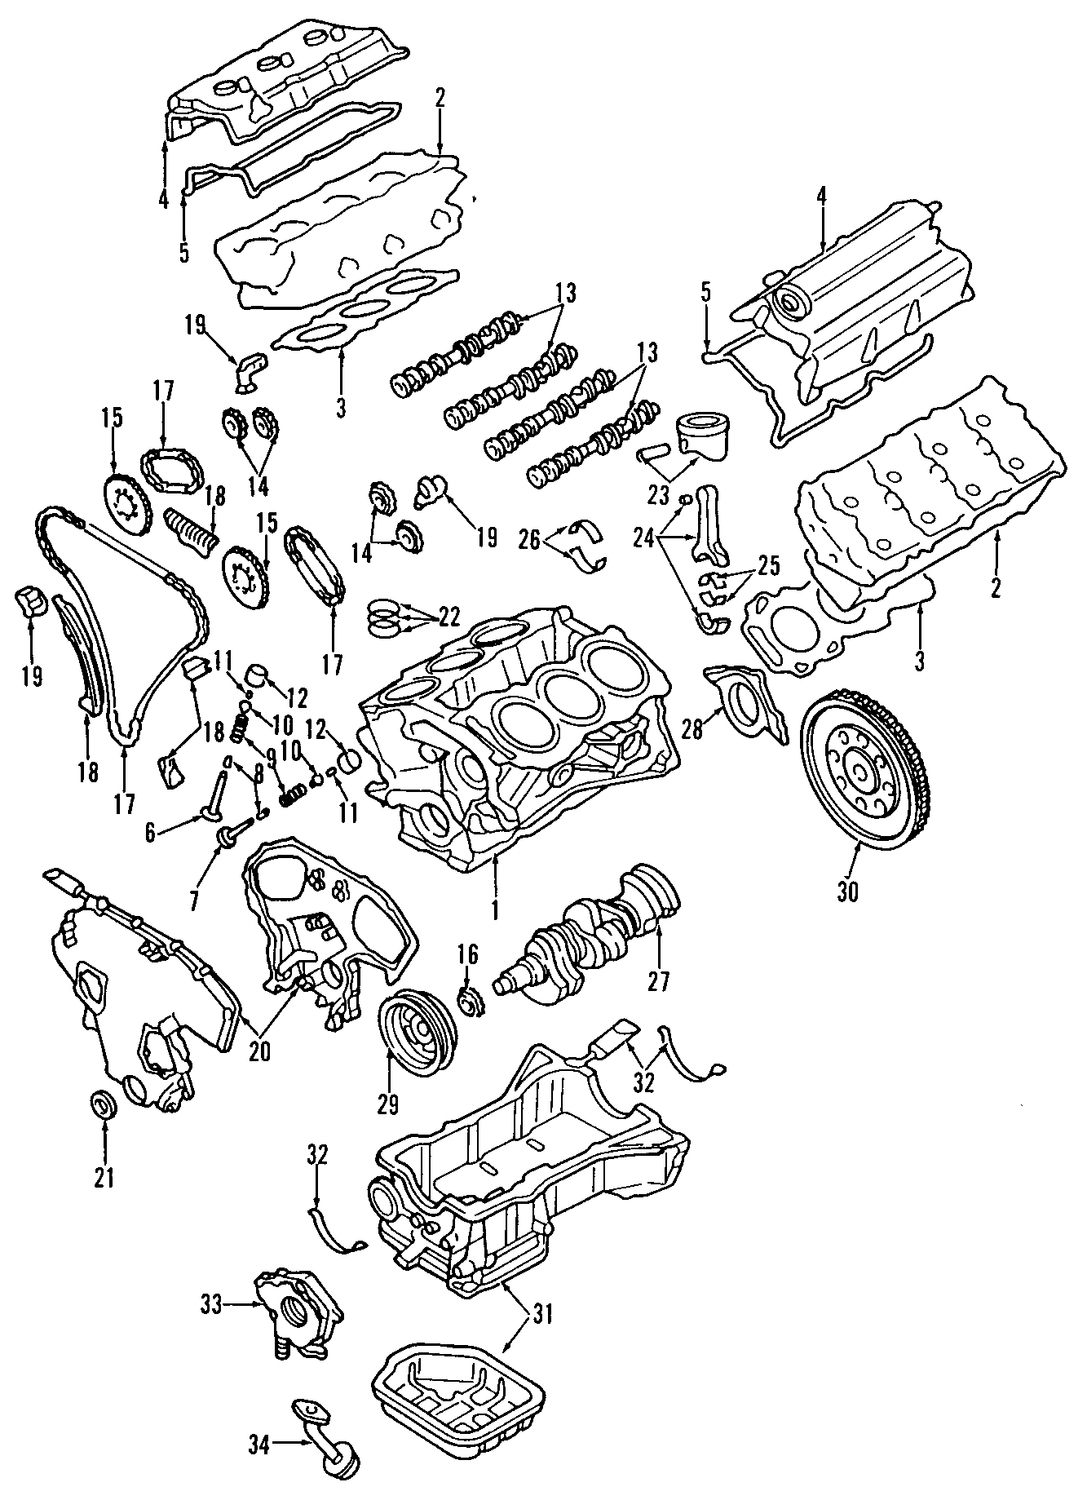 Infiniti G35 Cylinder Head And Valves Parts